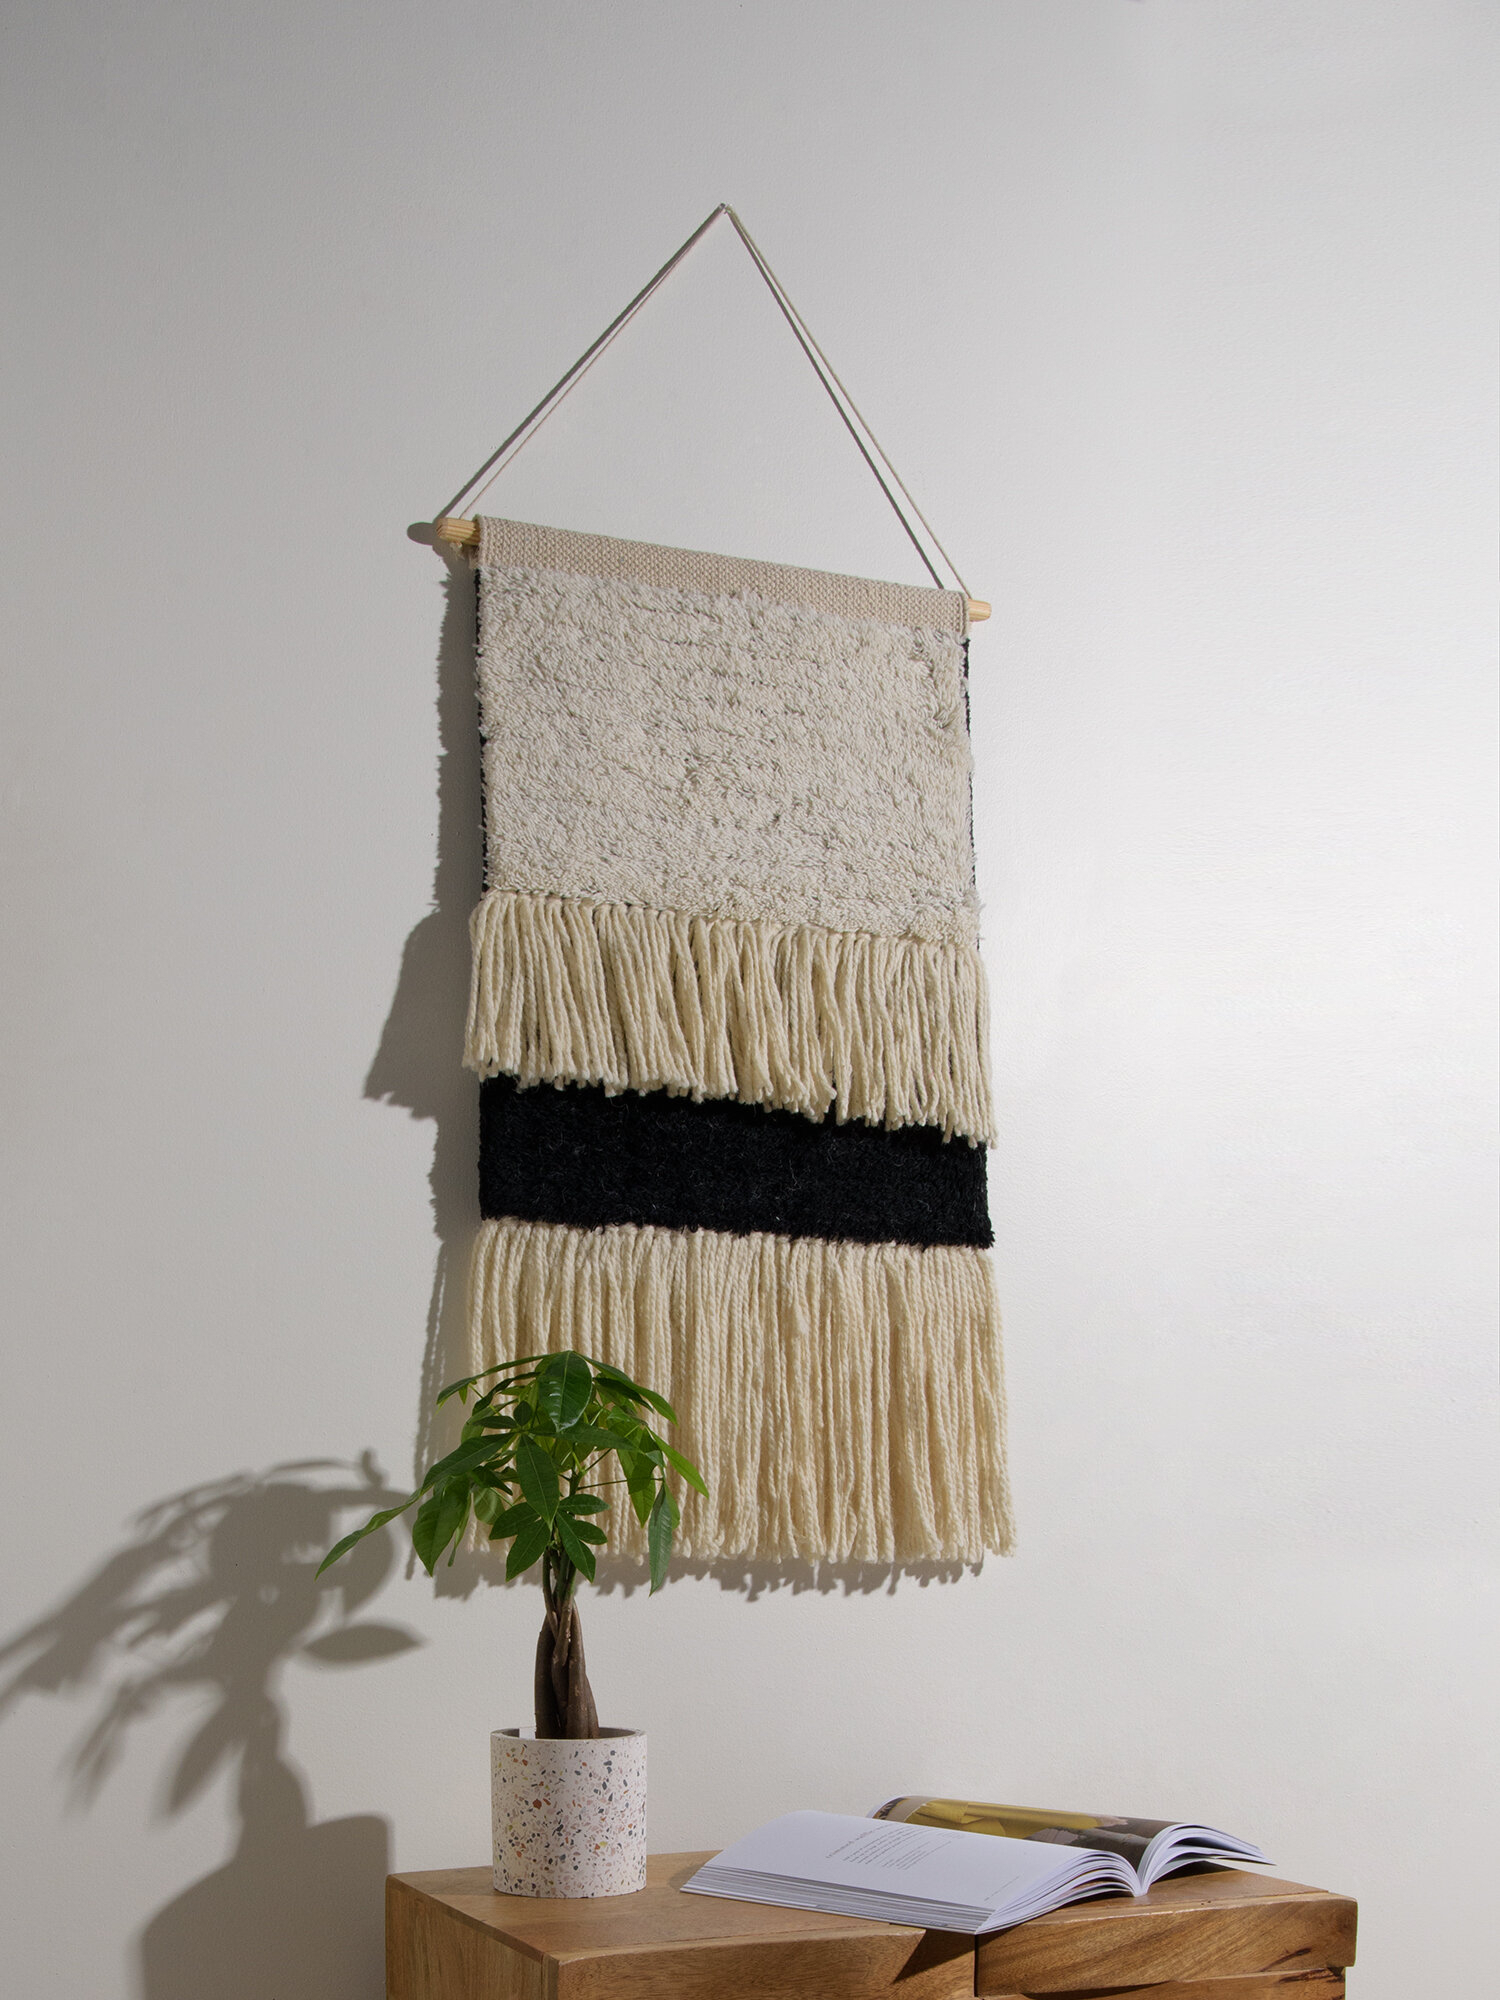 Blended Fabric Wall Hanging With Hanging Accessories Included Throughout Current Blended Fabric Wall Hangings With Hanging Accessories Included (View 2 of 20)